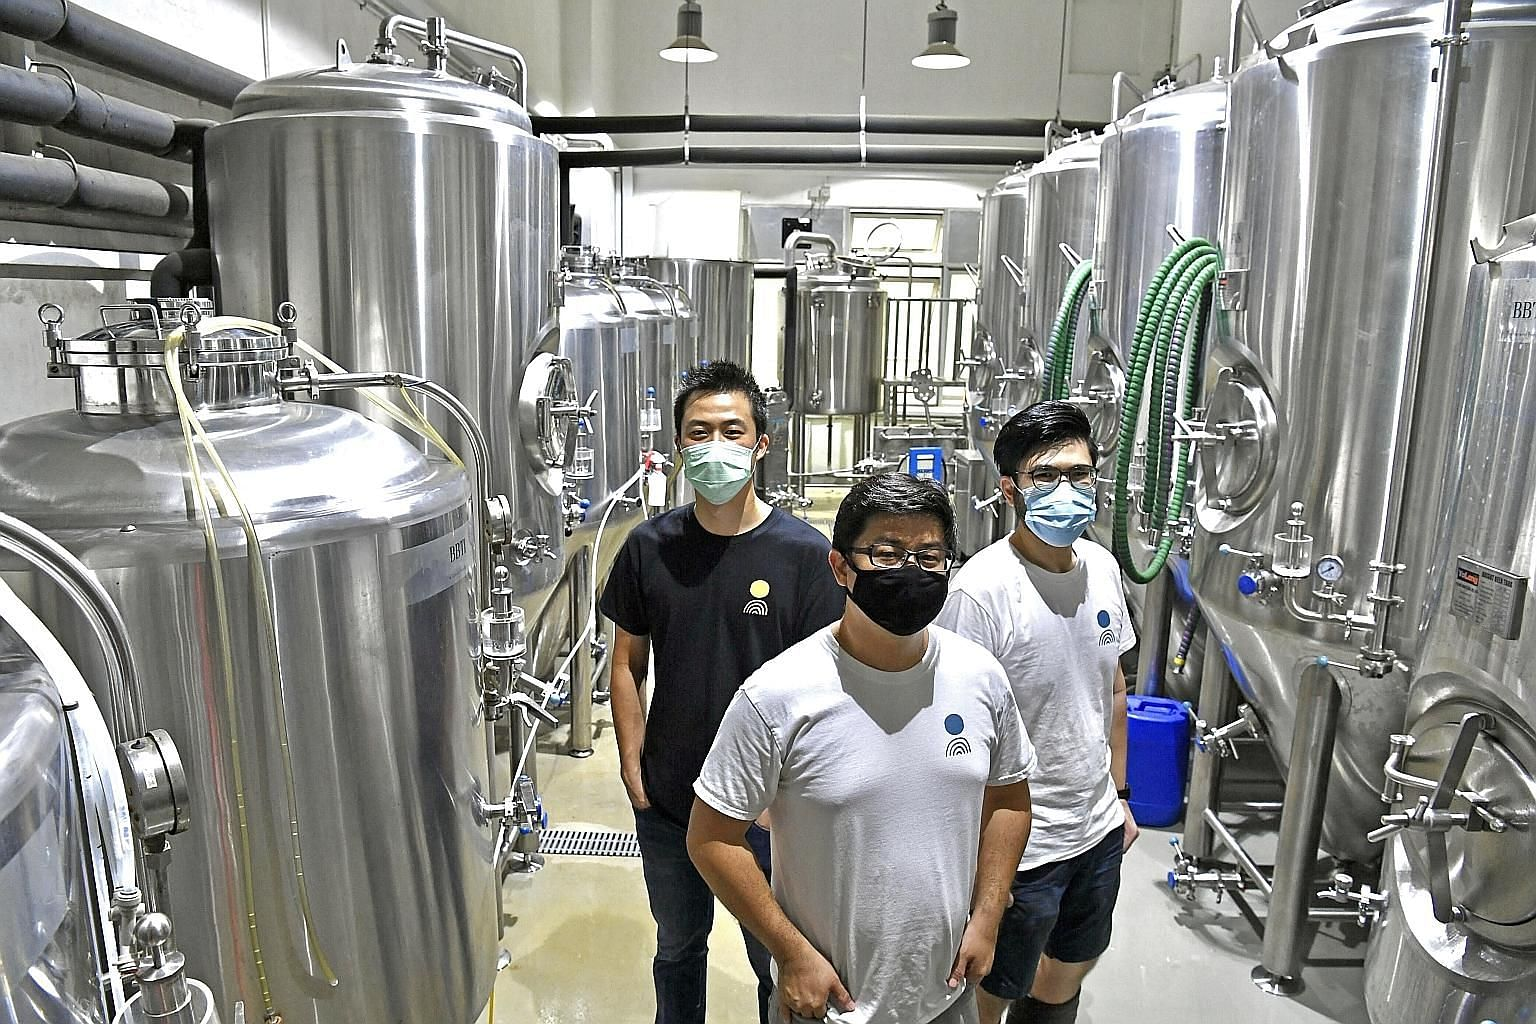 (From left) Off Day Beer Company co-founders Kasster Soh, 33, Kevin Ngan, 39, and Daryl Yeap, 29, at their brewery in Jurong Food Hub. Mr Ngan said that the fund transfer service, which he applied for through OCBC Bank, was particularly useful during